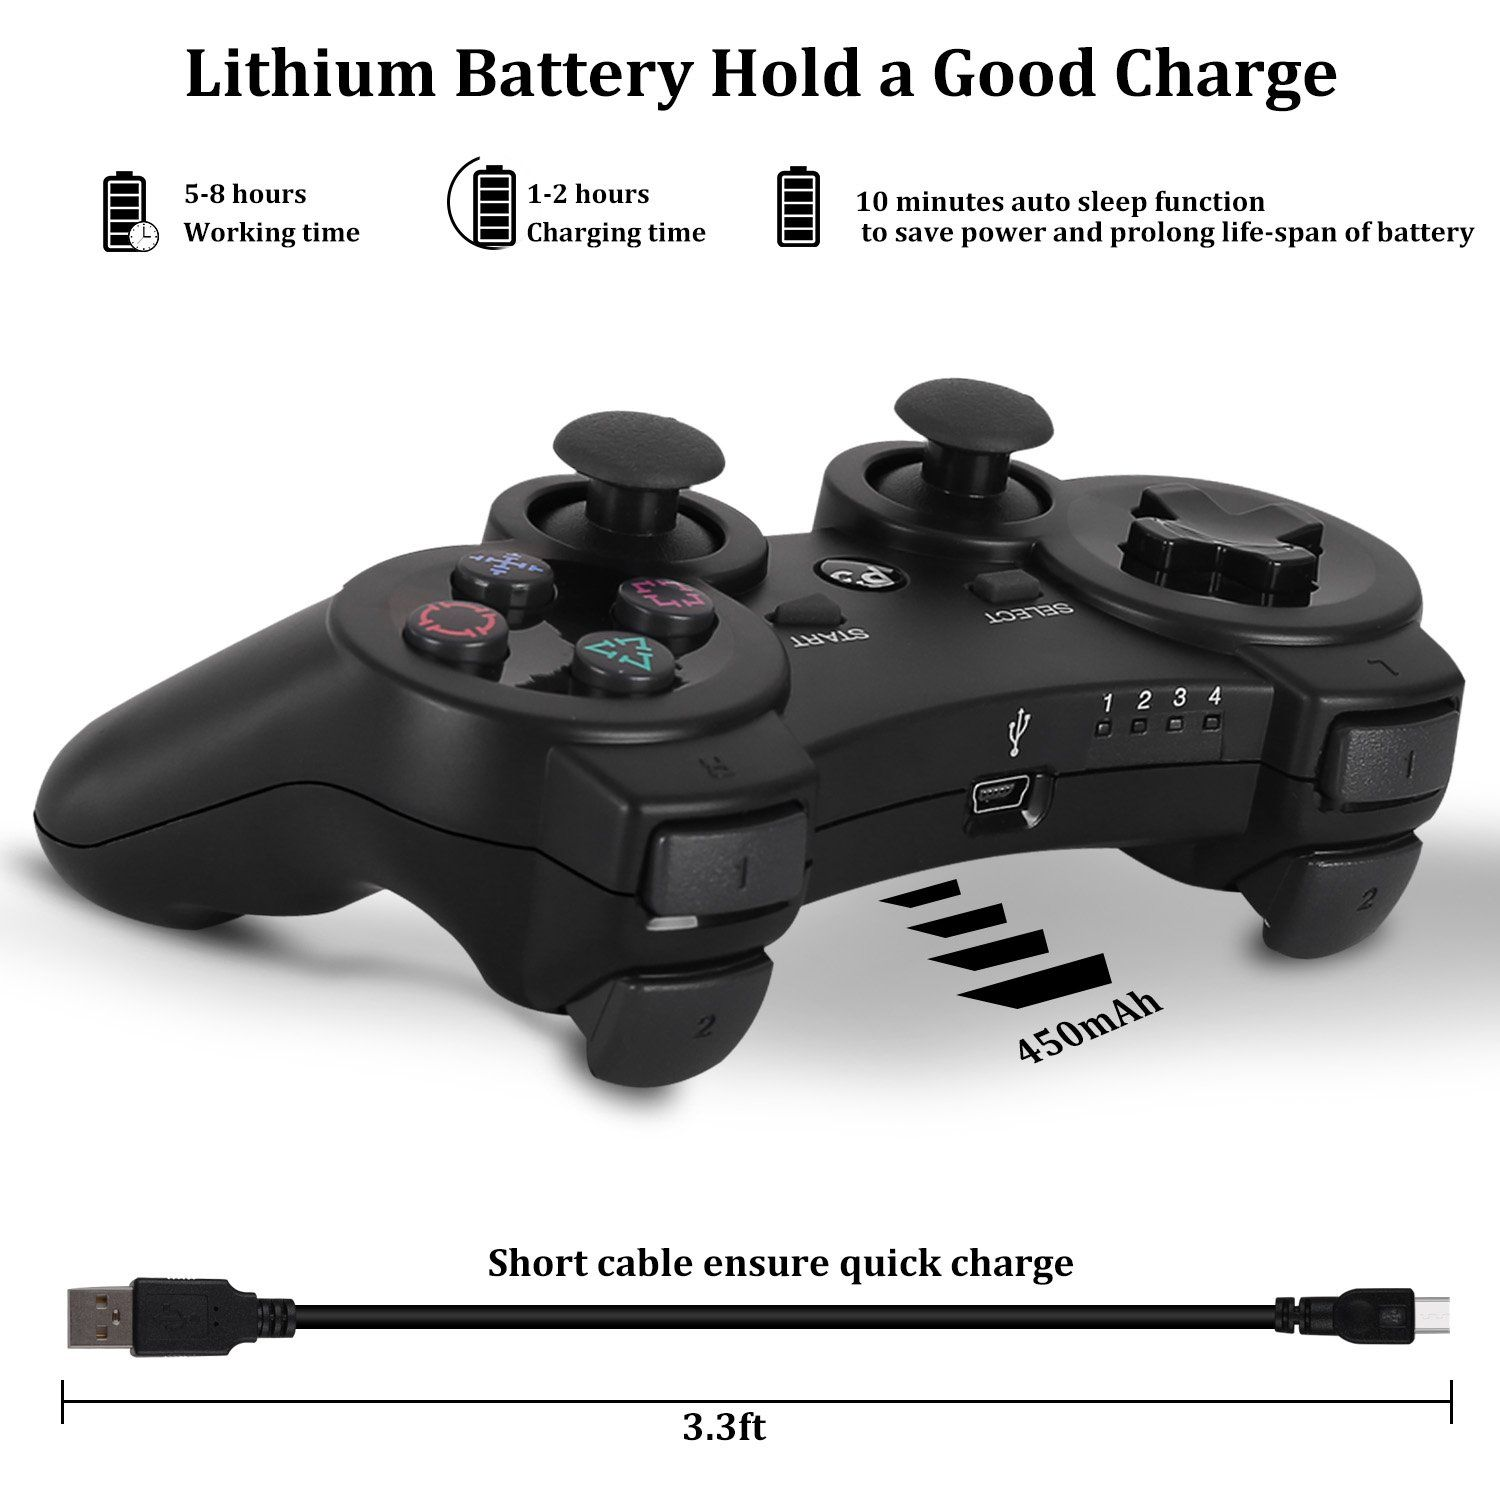 Yu33 Ps3 Controller Wireless 2 Pack Dualshock 3 Games Remote For Playstation 3 Cheap Ds3 Joystick With Sixaxis Mini Game Remote Ps3 Controller Best Ps3 Games